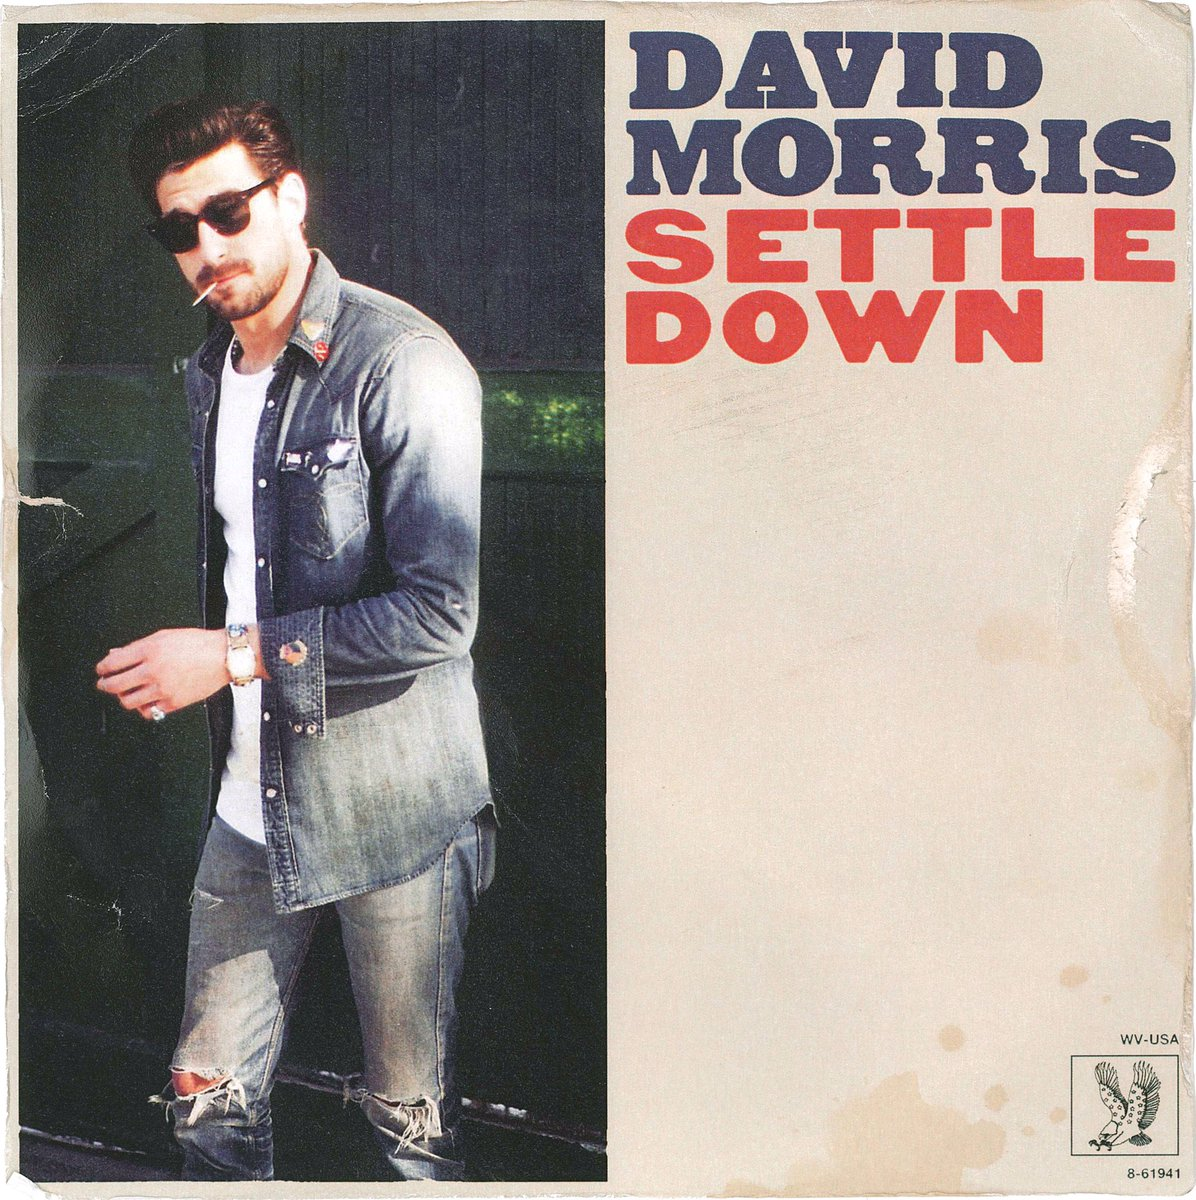 OUT NOW. New song 'Settle Down'. Listen here: https://t.co/h9Nd99THe2...